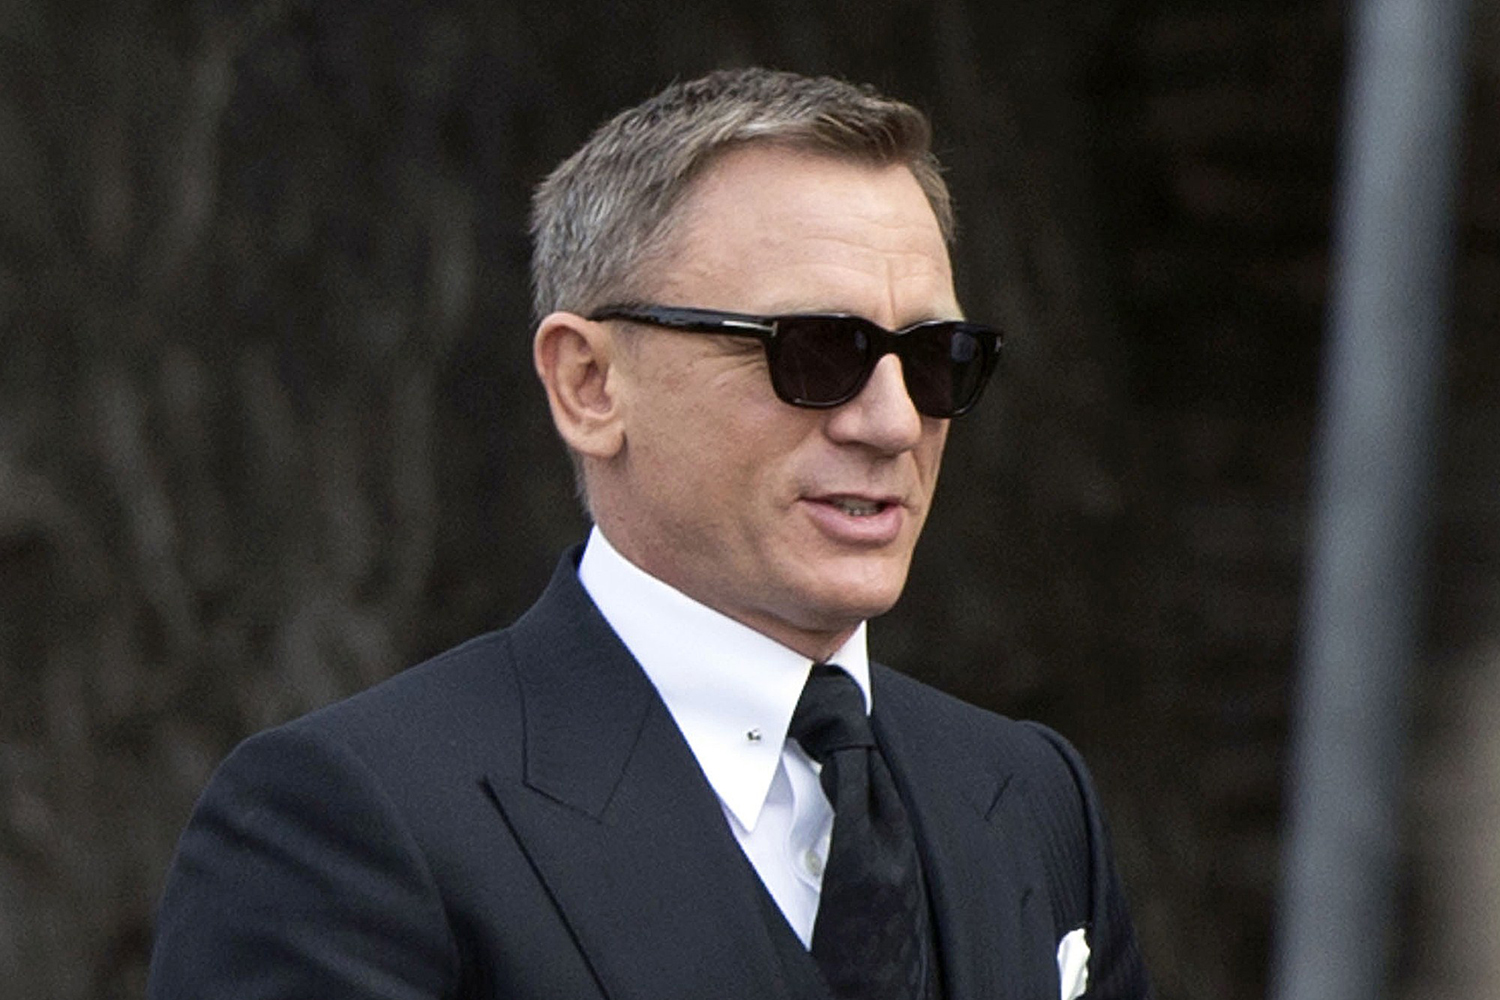 Daniel Craig Wallpapers High Quality | Download Free